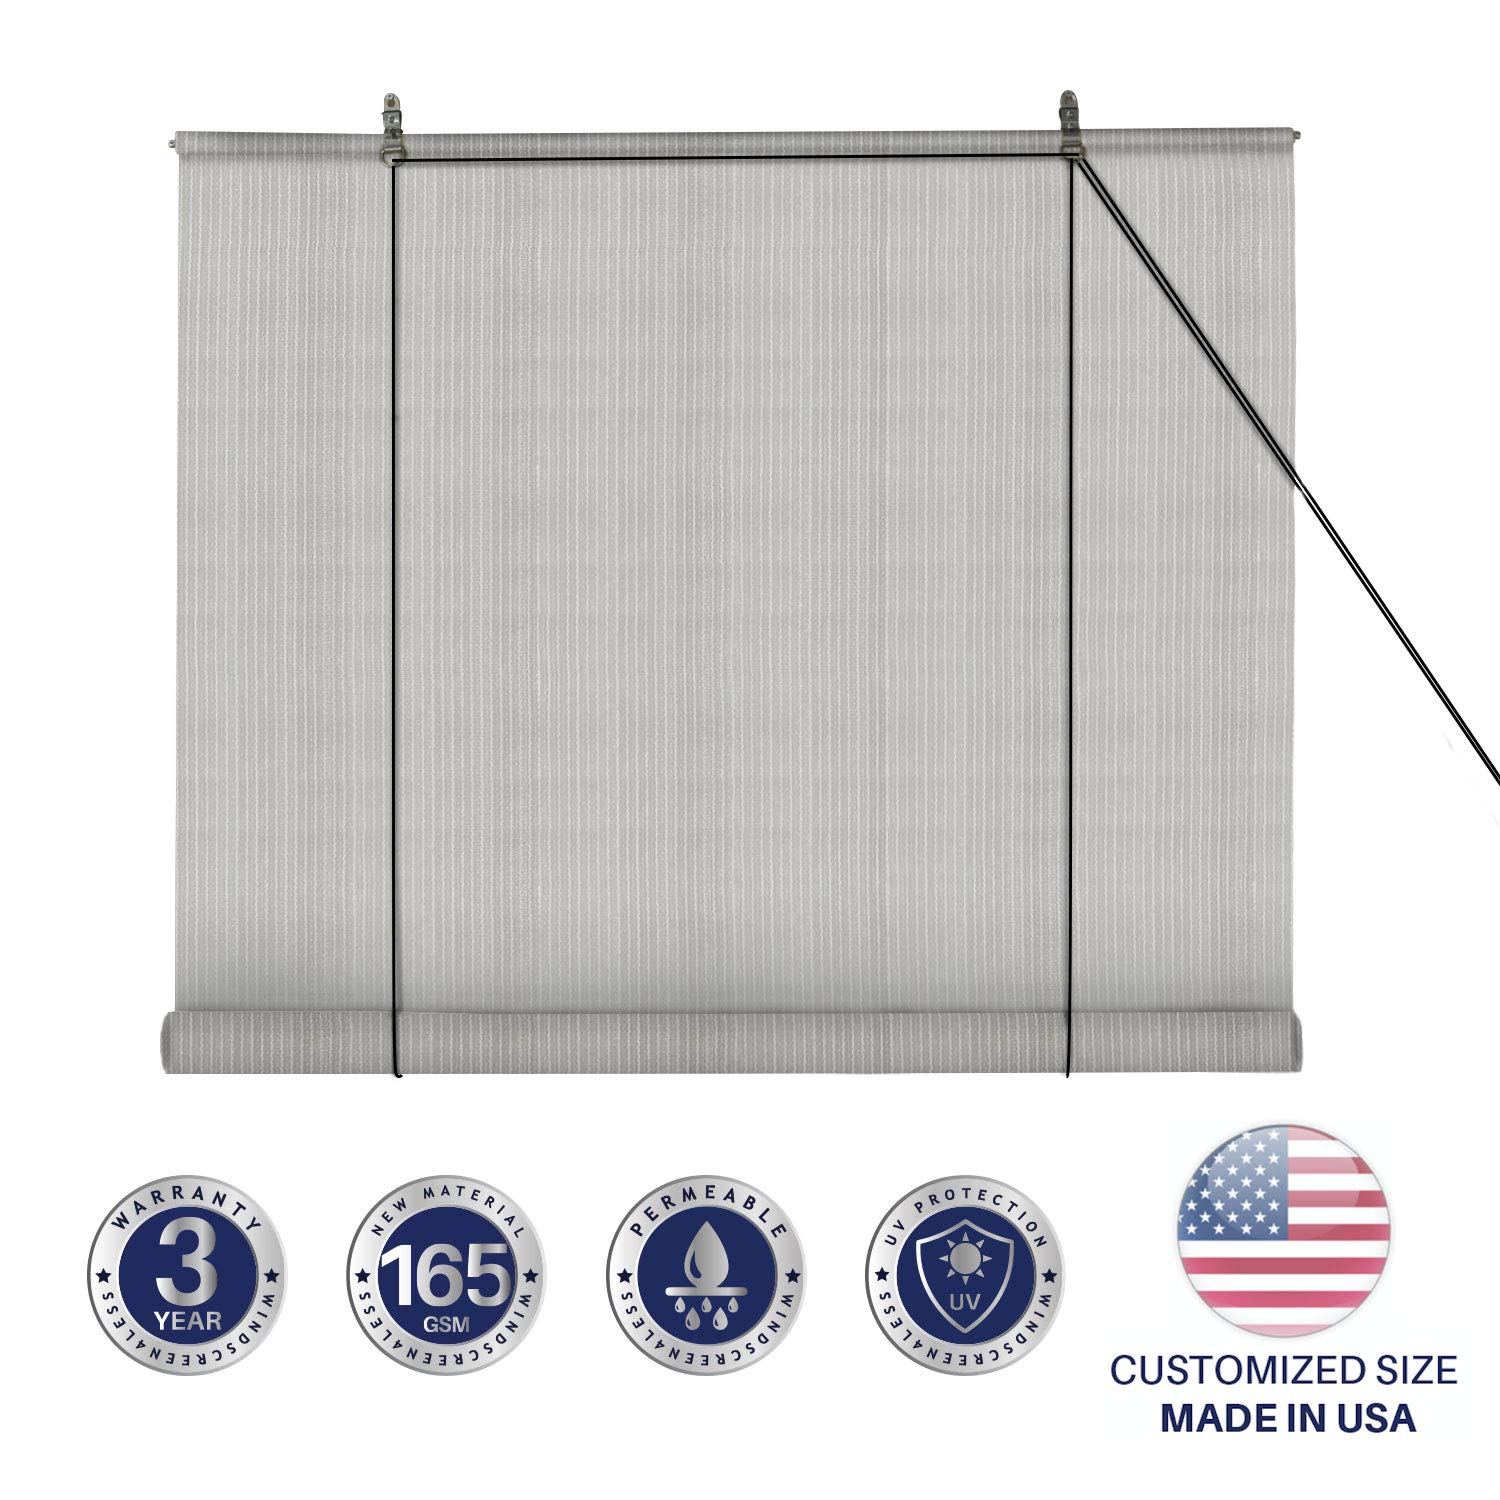 Windscreen4less Exterior Roller Shade Blinds Outdoor Roll Up Shade with 90% UV Protection Privacy for Deck Back Yard Gazebo Pergola Balcony Patio Porch Carport 5' W x 6' L Grey